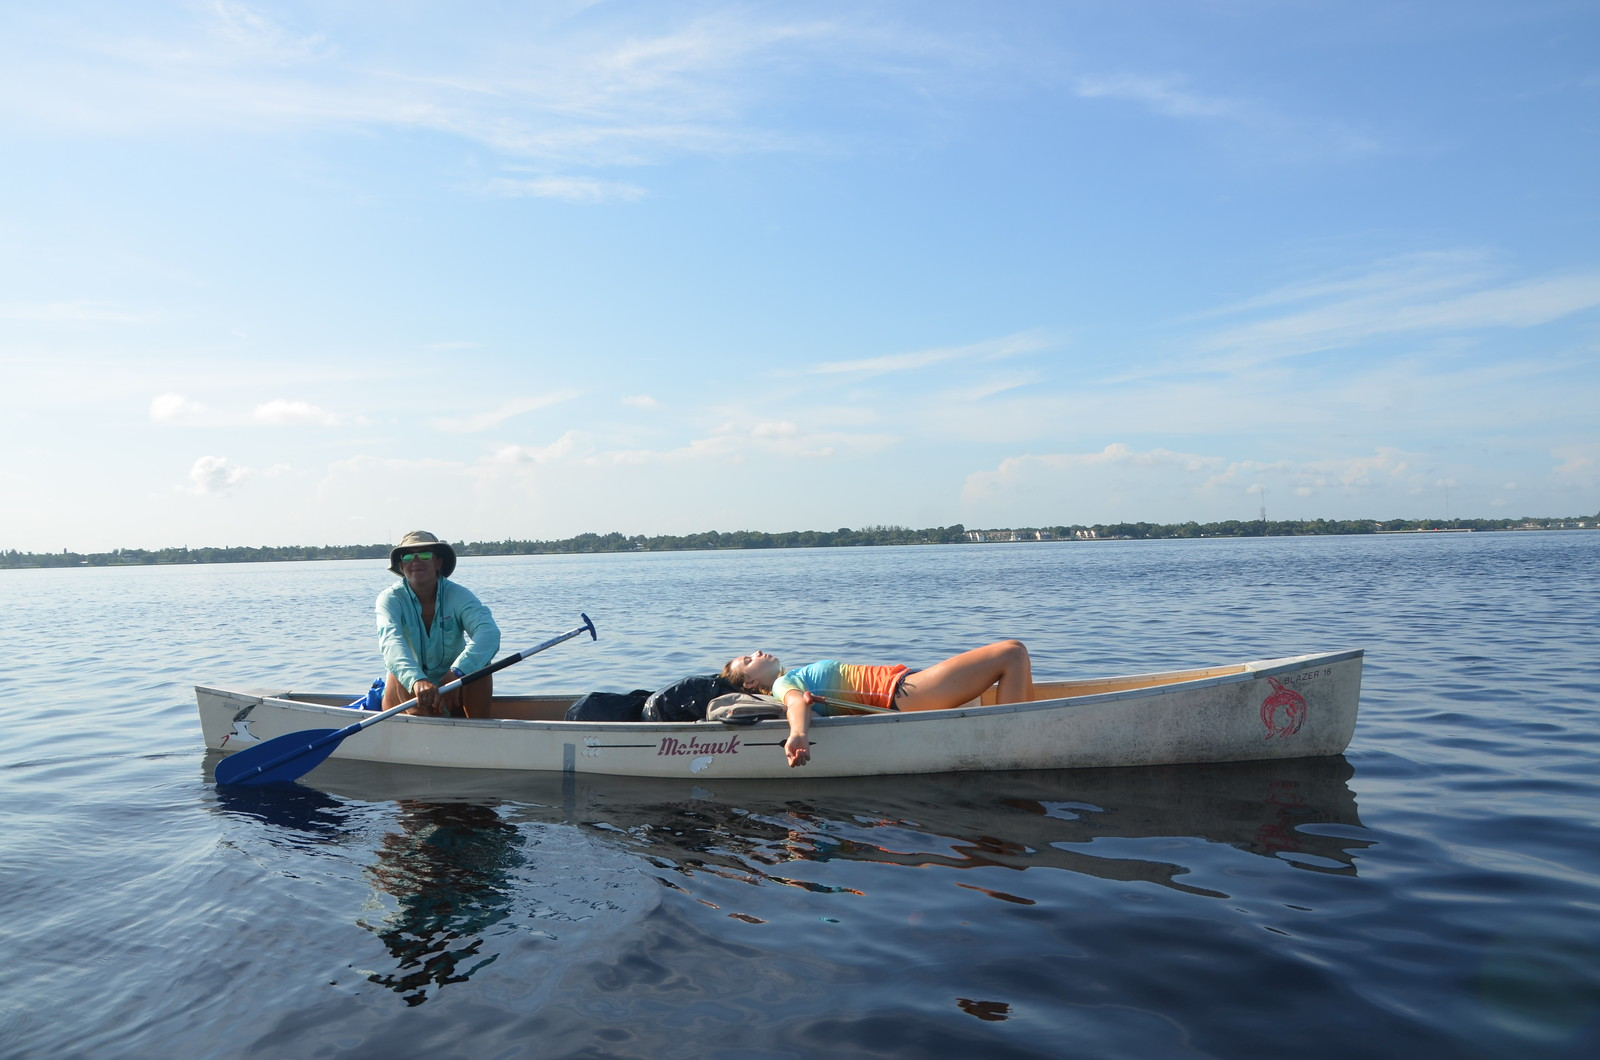 Taking a break during a long day of paddling on the Caloosahatchee River.